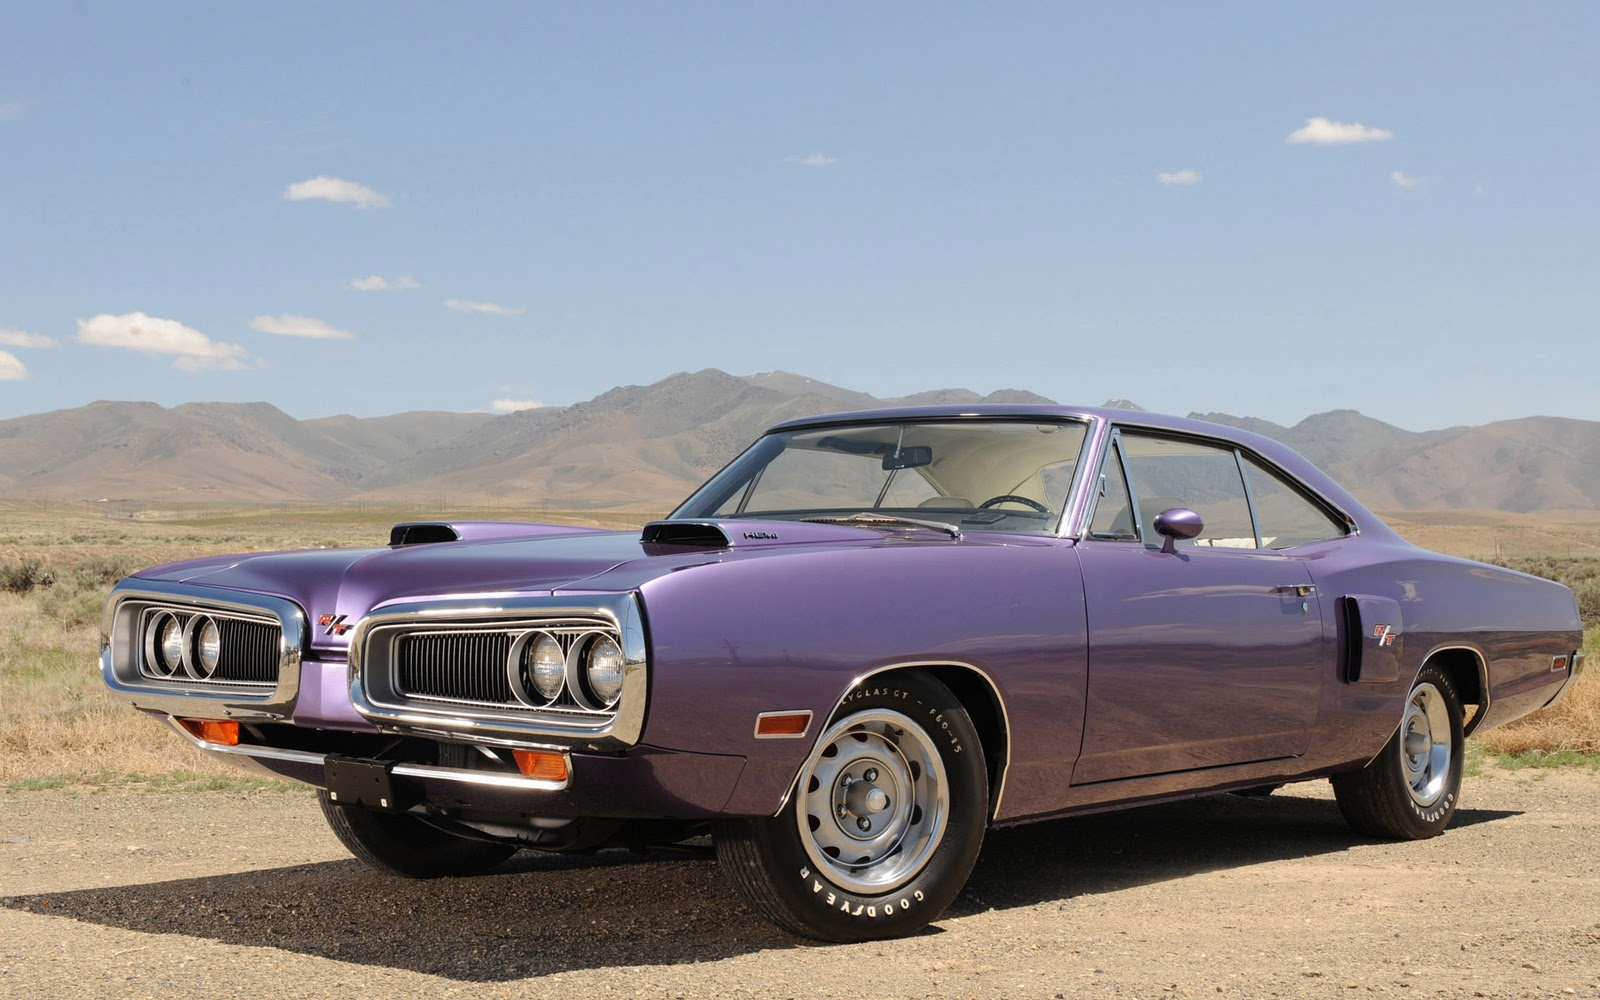 Photos Dodge Coronet Super Bee 1970 Muscle Cars ~ LUXURY CARS NEVER DIE